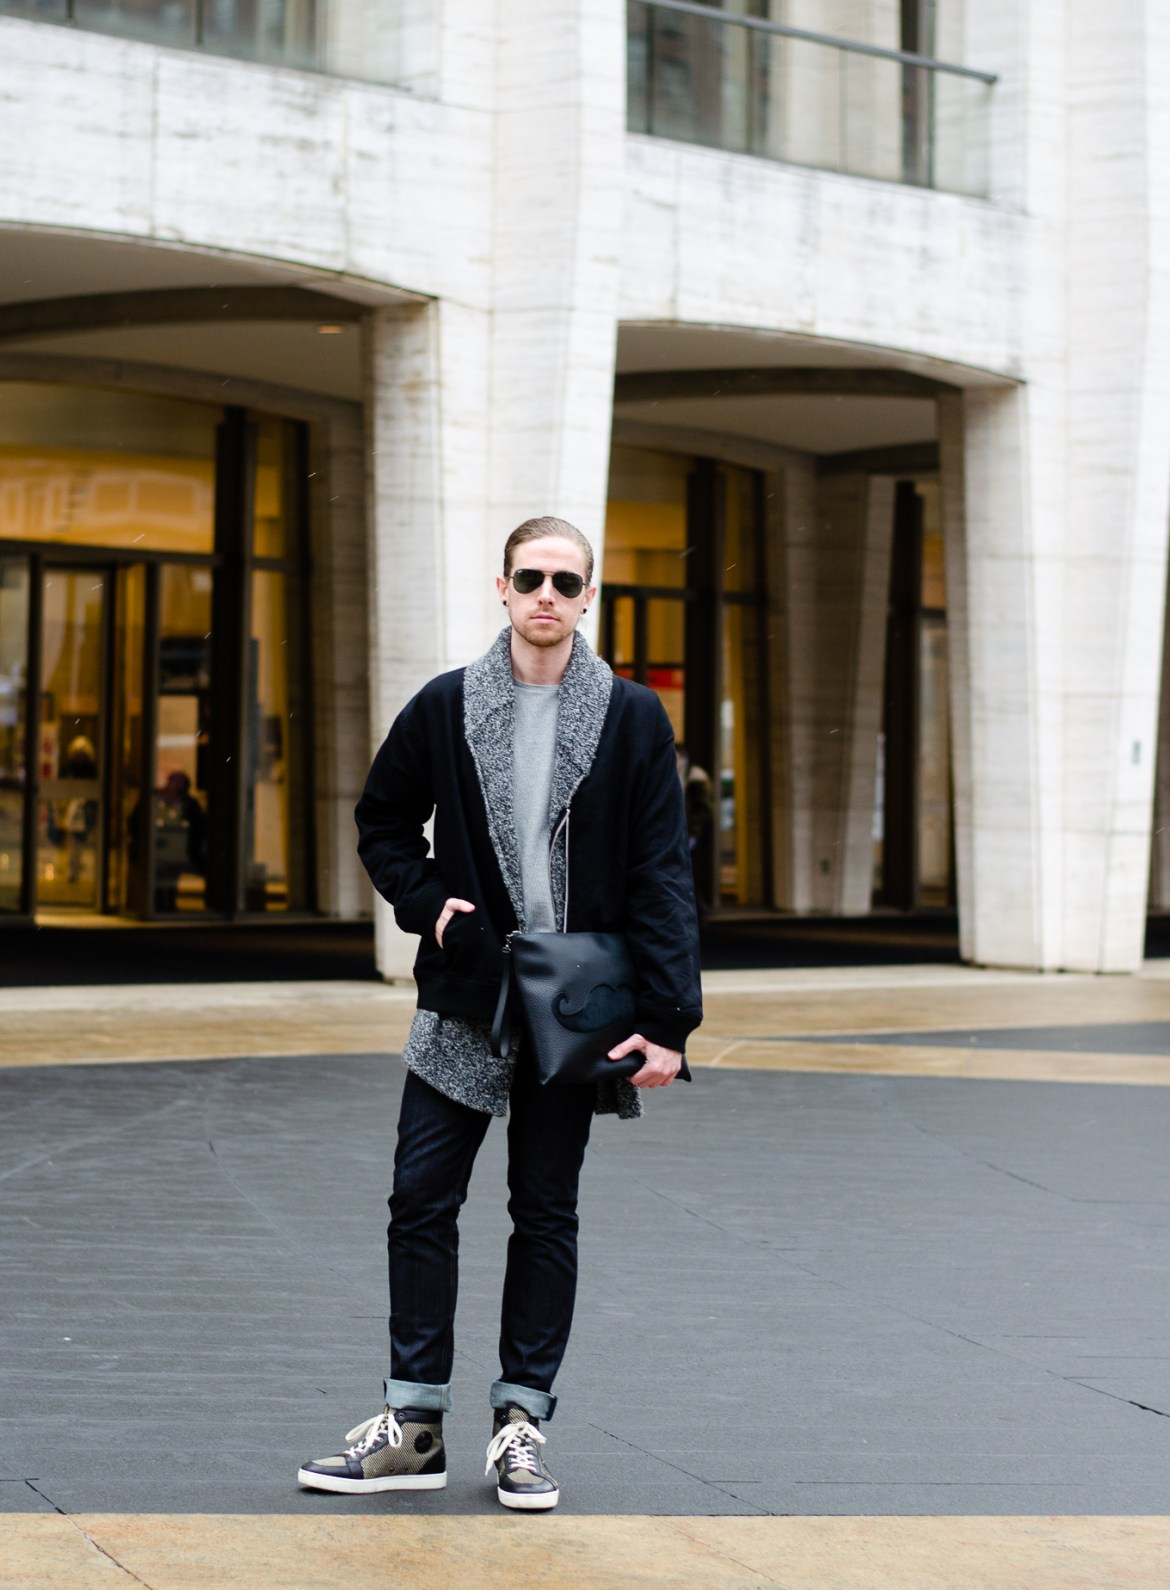 The Kentucky Gent, a men's fashion and lifestyle blogger, spends his first day of NYFW at Lincoln Center in Christian Louboutin sneakers and bag.The Kentucky Gent, a men's fashion and lifestyle blogger, spends his first day of NYFW at Lincoln Center in Christian Louboutin sneakers and bag.